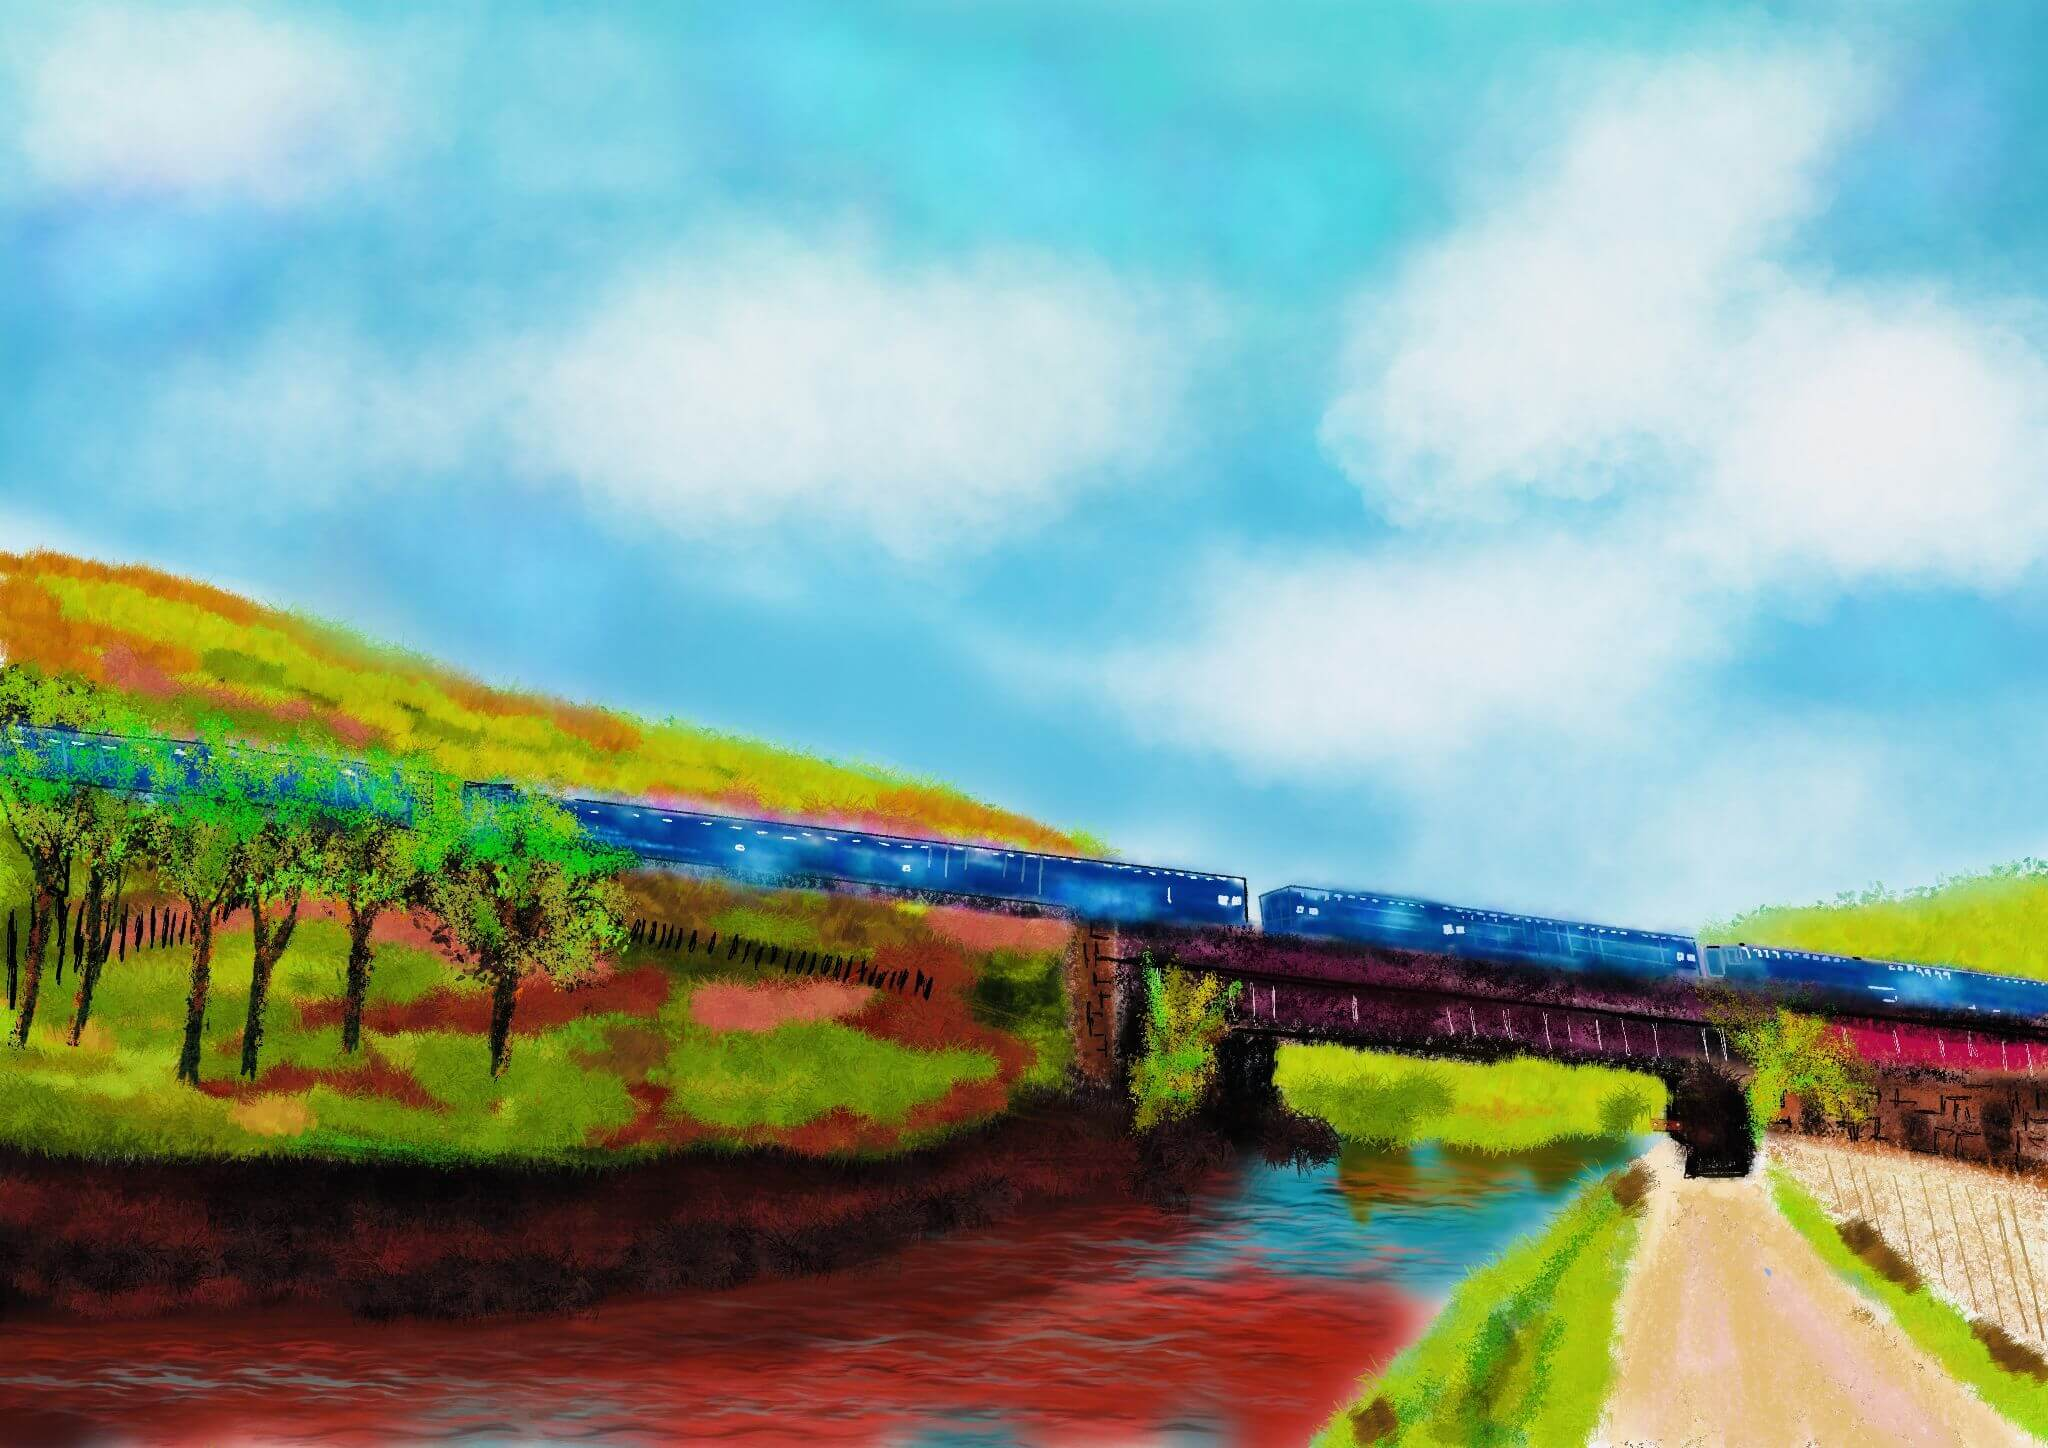 Blue train over Rochdale Canal, Todmorden